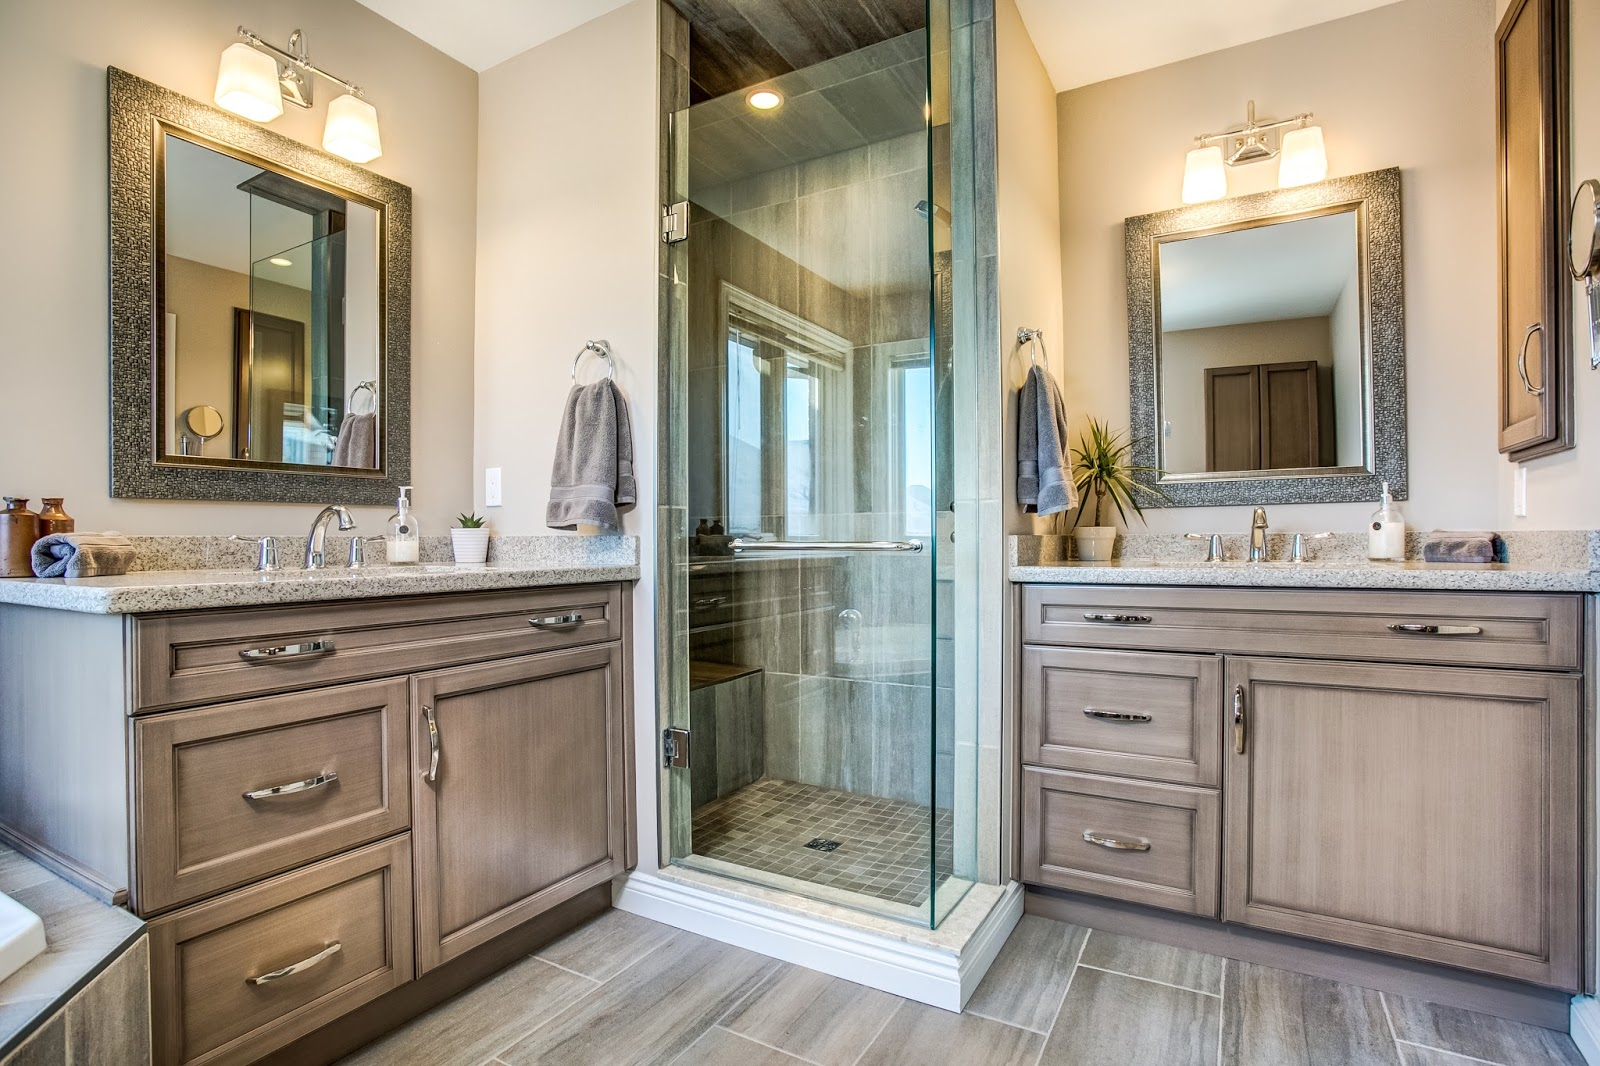 Bathroom remodel cost budget average luxury home - How much is a small bathroom remodel ...